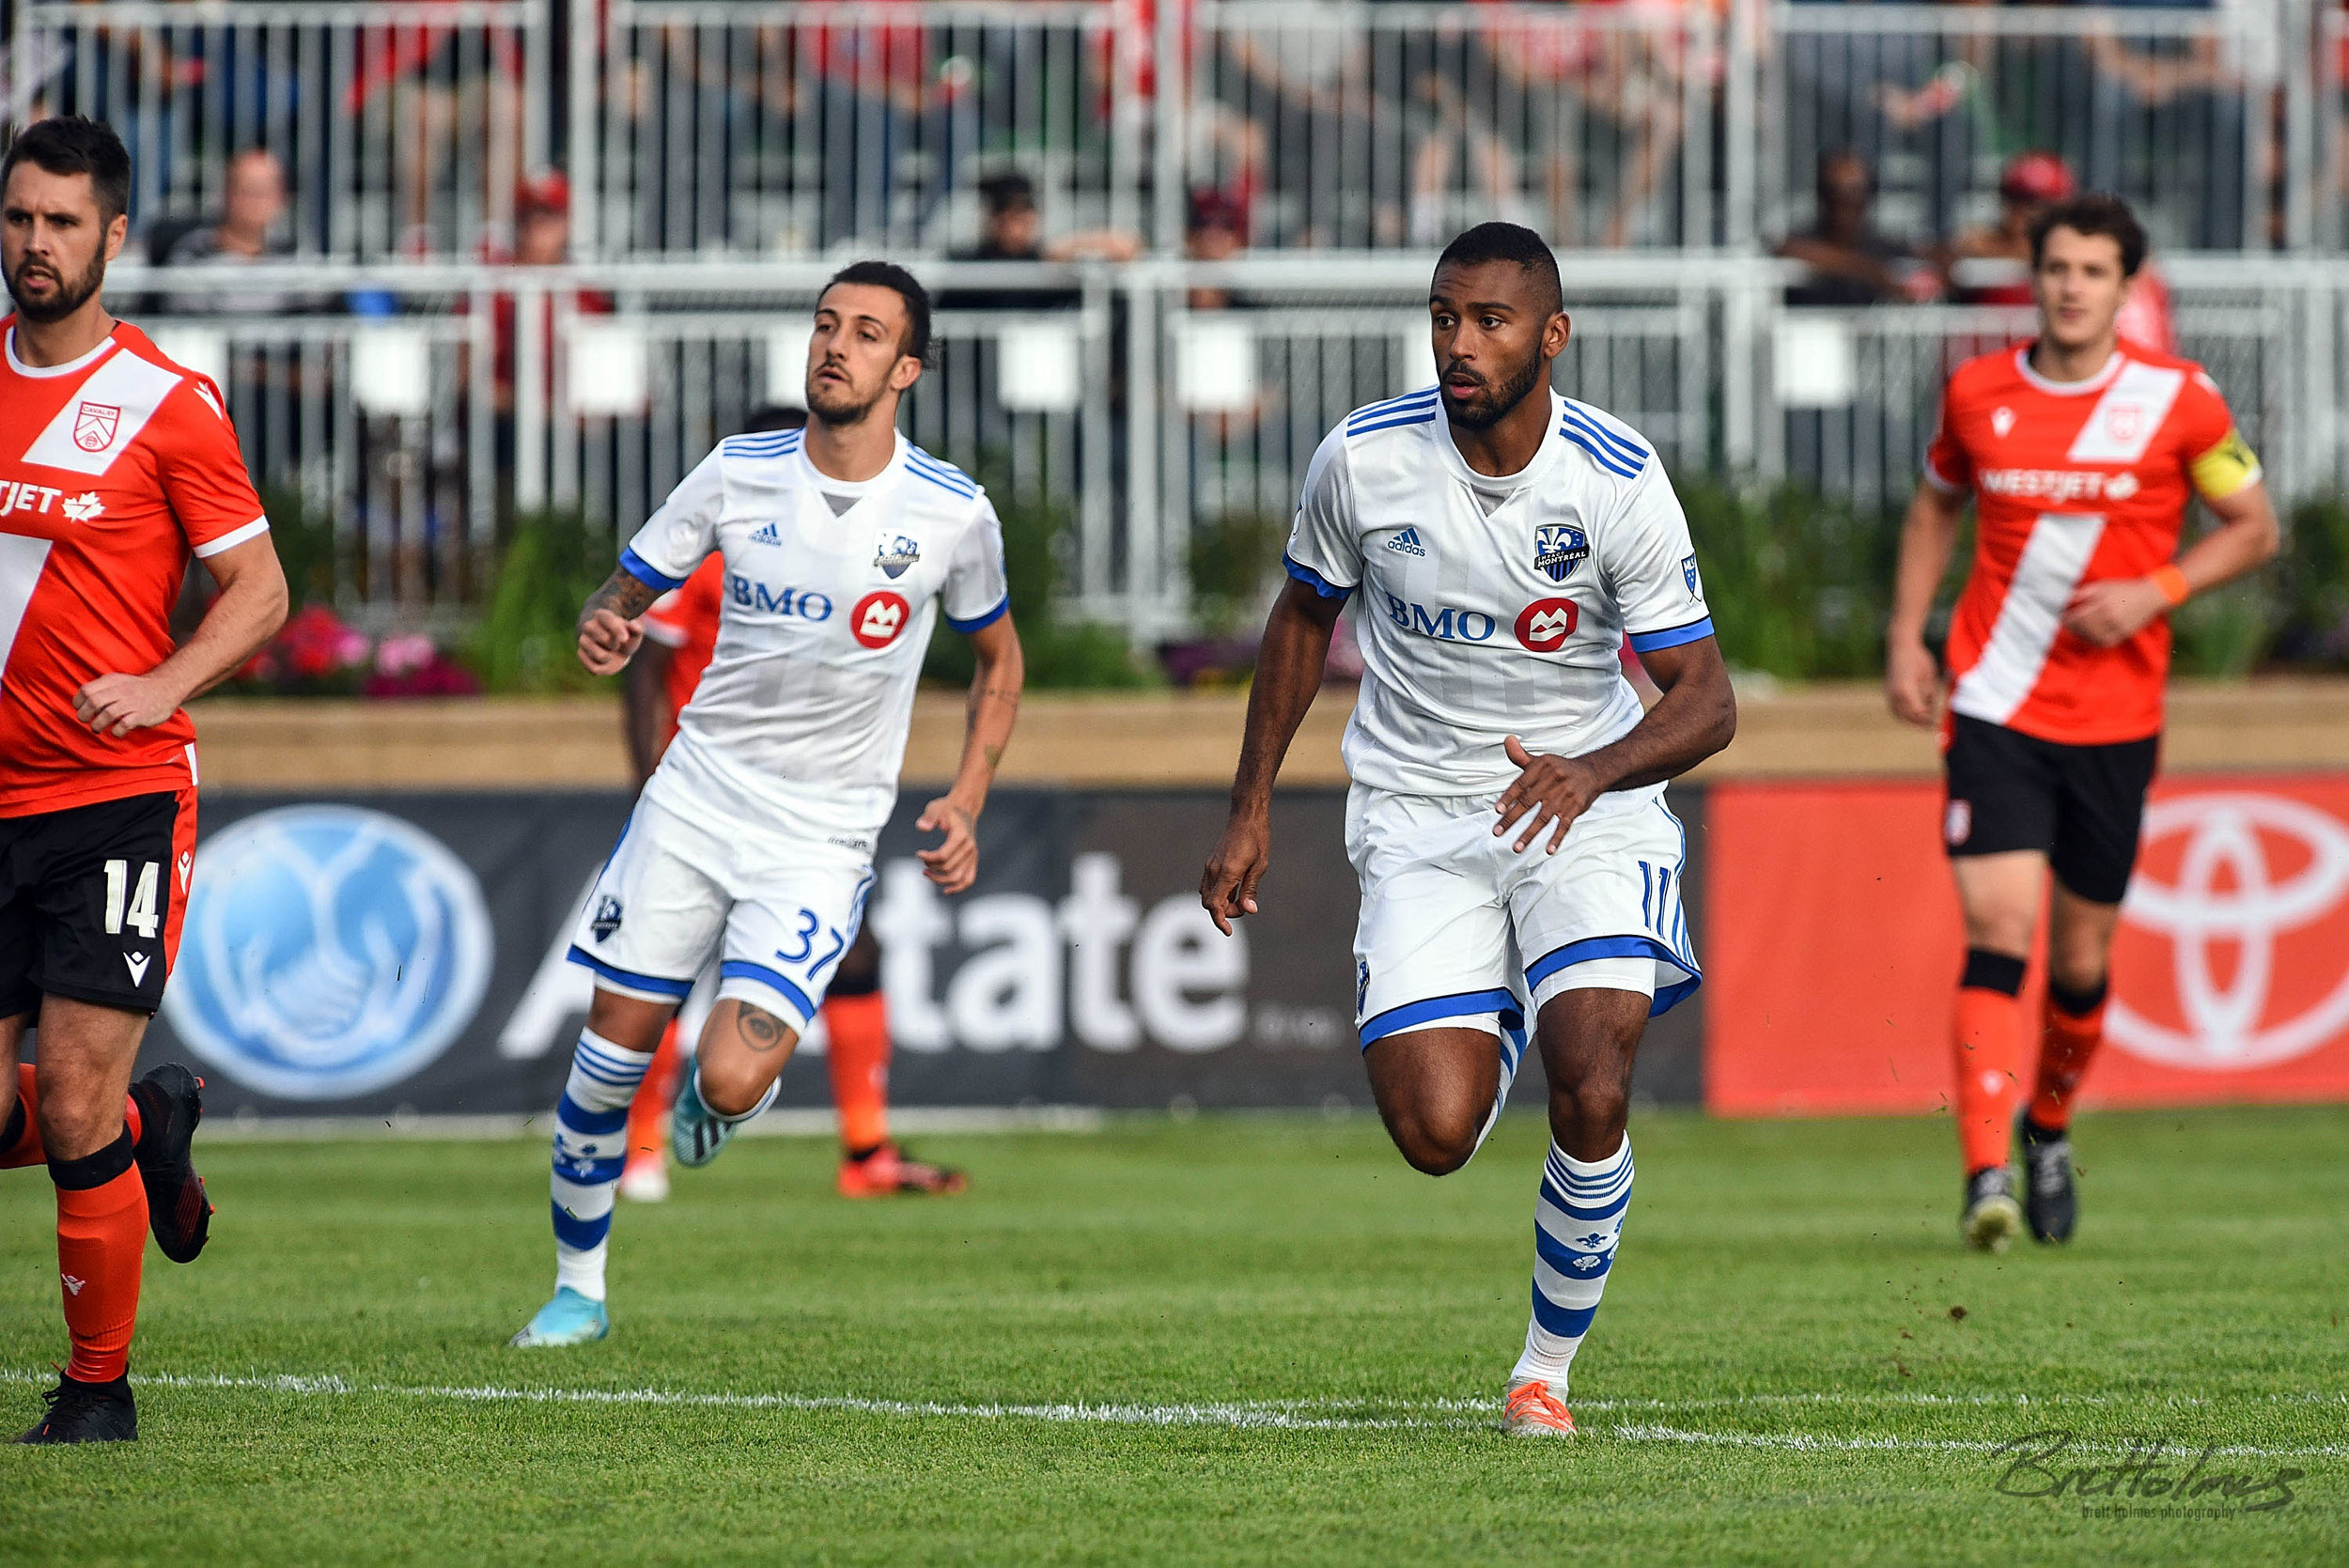 CALGARY, AB - AUGUST 14: Montreal Impact forward Anthony Jackson-Hamel (11) and Montreal Impact forward Maximiliano Urruti (37) run during the first half of the second leg of a Canadian Championship semifinal match between the Montreal Impact and Cavalry FC on August 14, 2019, at ATCO Field at Spruce Meadows in Calgary, AB. (Photo by Brett Holmes/Icon Sportswire)